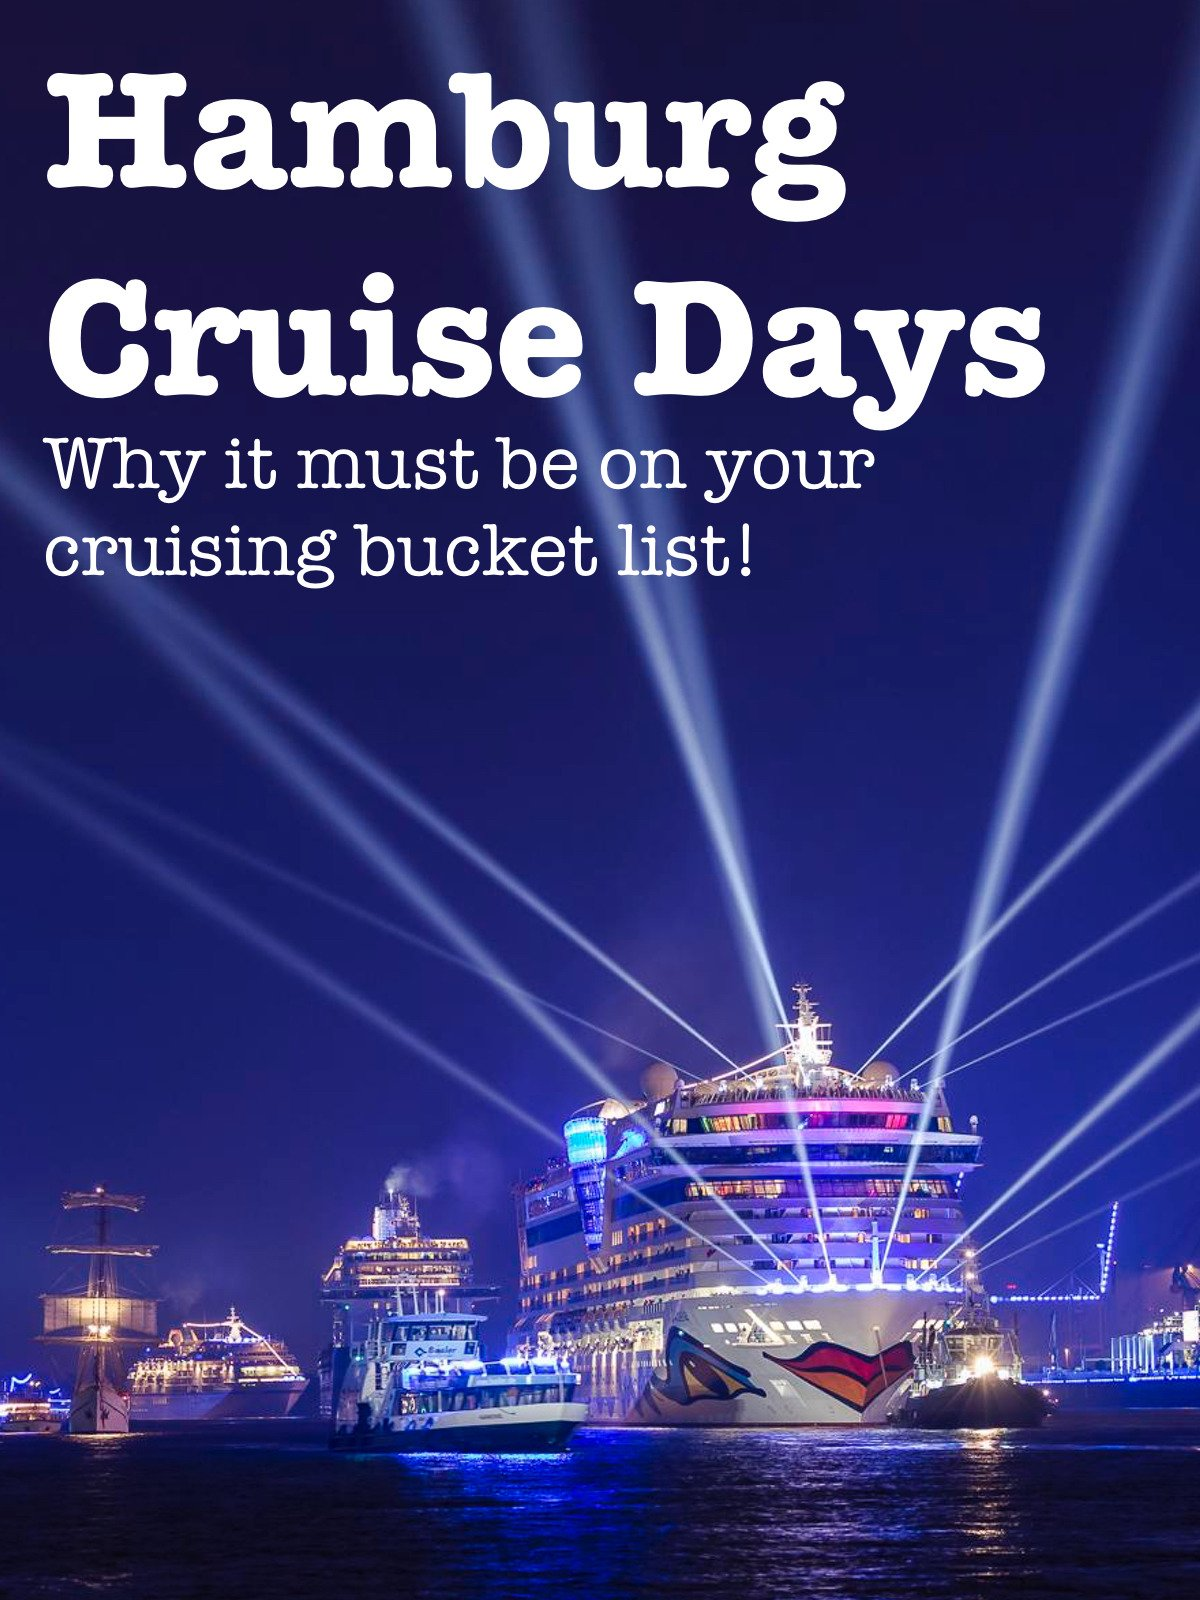 Review: Hamburg Cruise Days. Why it must be on your cruising bucket list! on Amazon Prime Instant Video UK